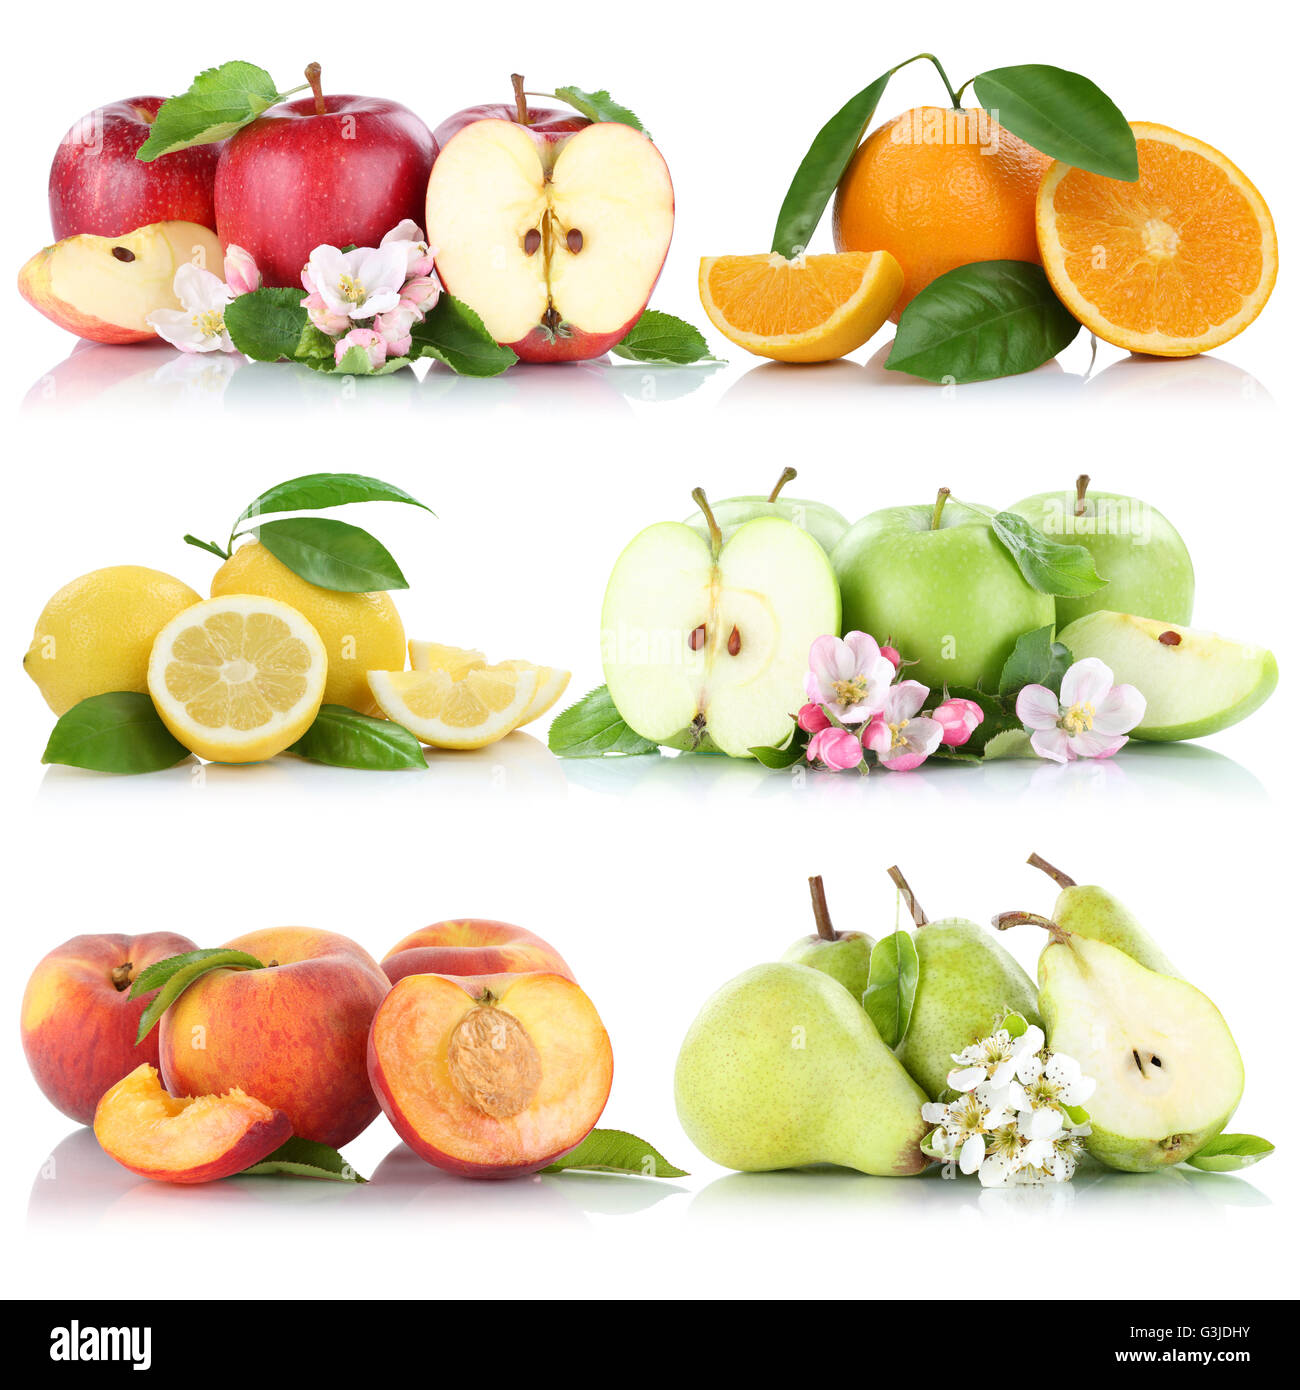 Fruits apple orange lemon peach apples oranges fruit collection isolated on a white background Stock Photo